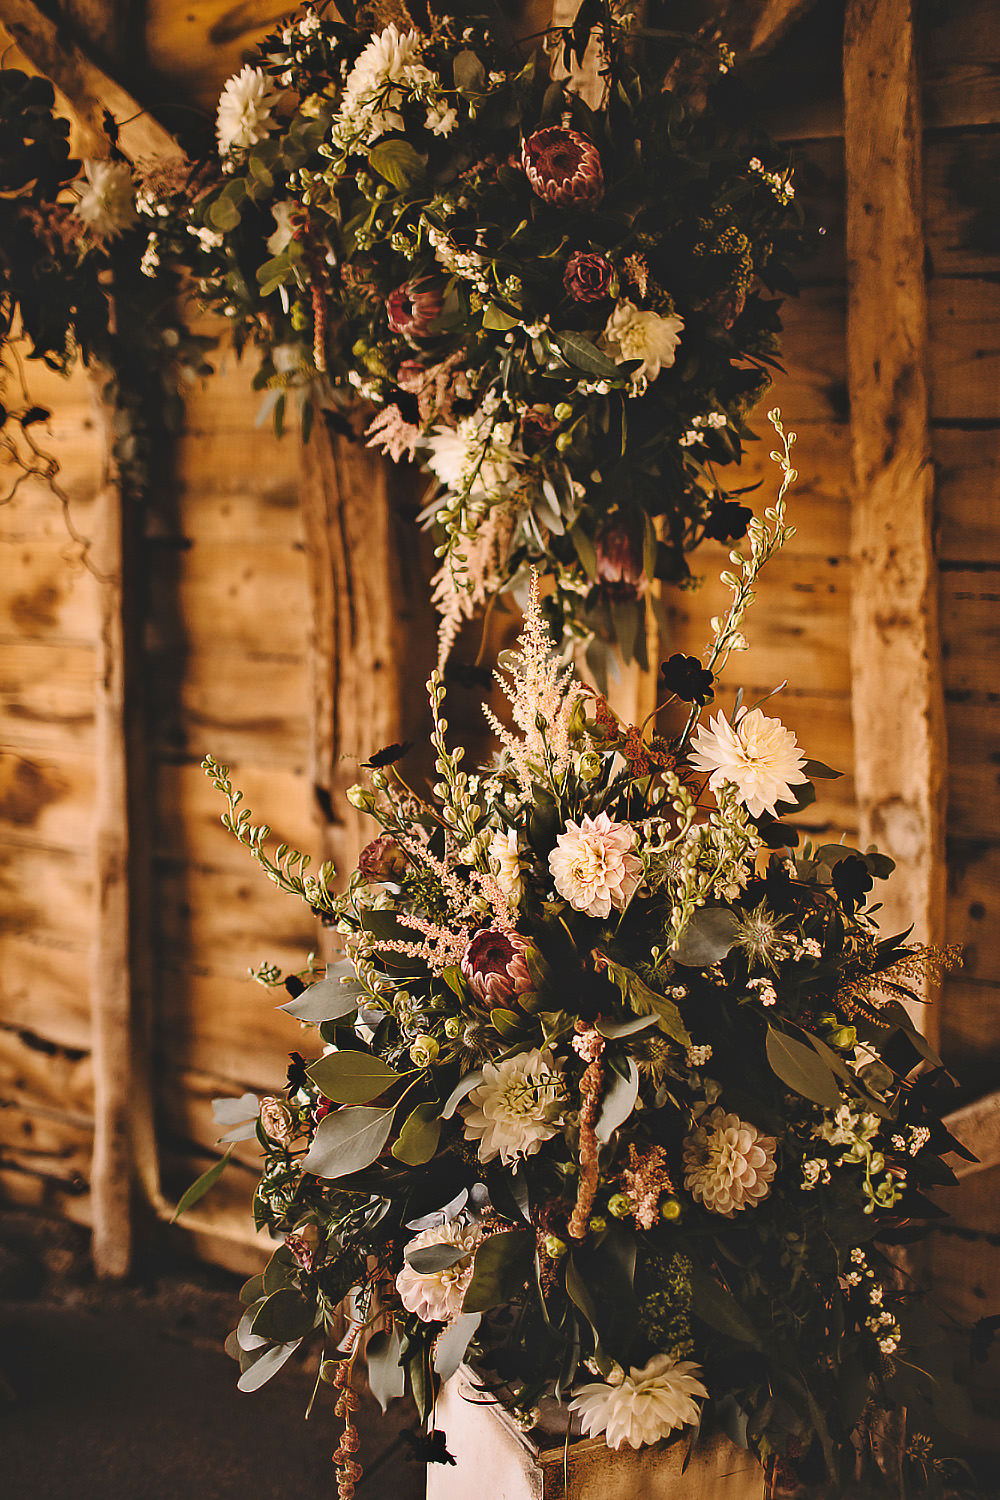 Ceremony Aisle Flower Arch Backdrop Greenery Suffolk Barn Wedding Carrie Lavers Photography